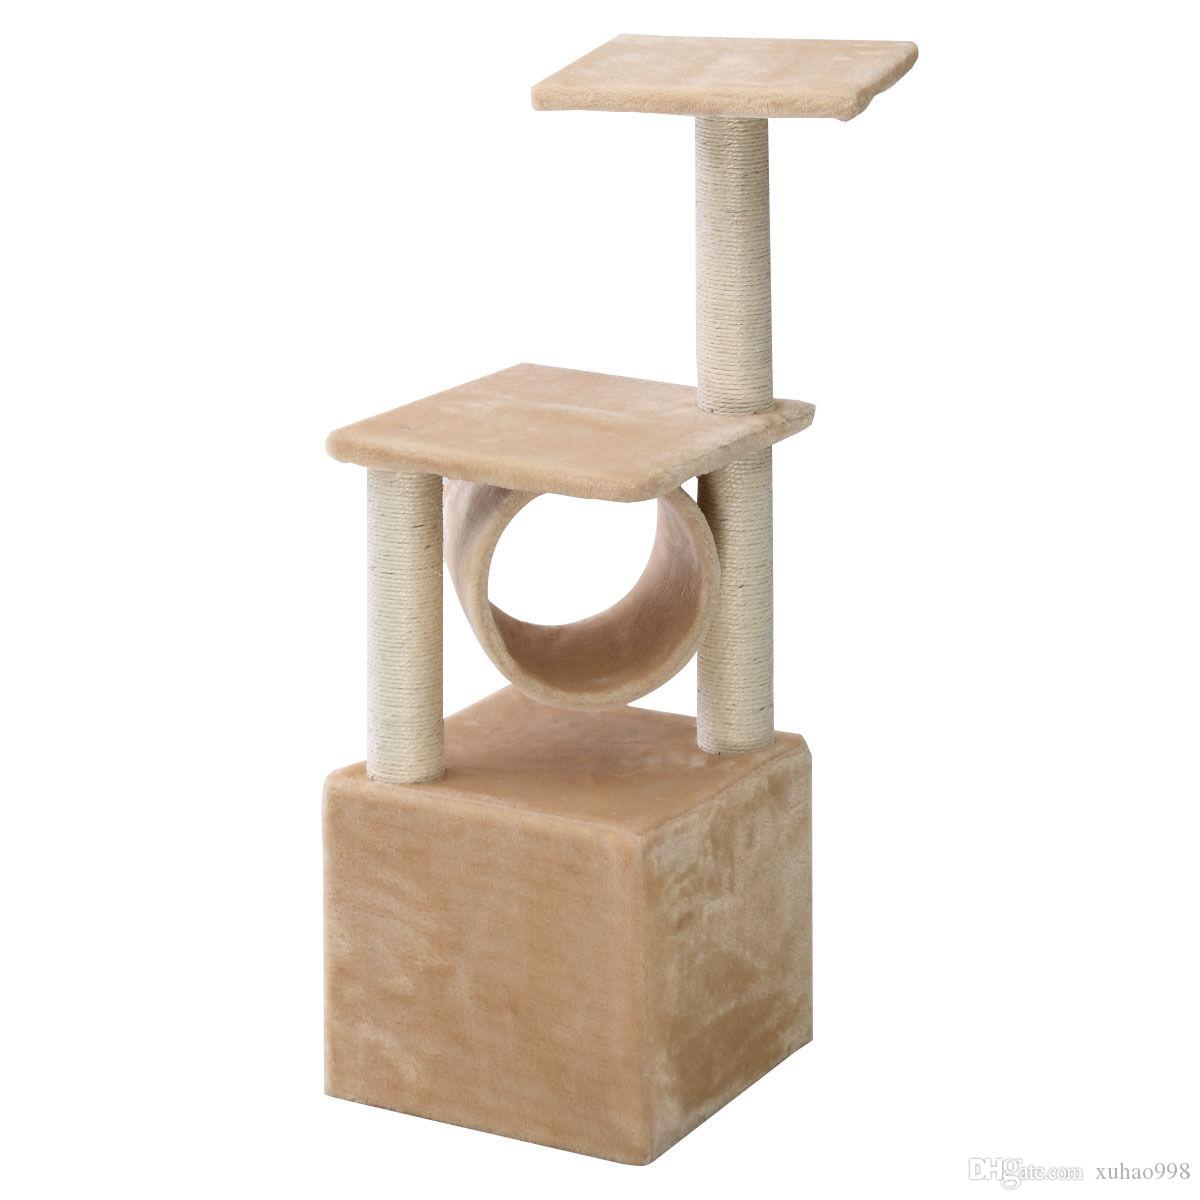 2021 Deluxe 36 Cat Tree Condo Furniture Play Toy Scratch Post Kitten Pet House Beige From Xuhao998 28 15 Dhgate Com